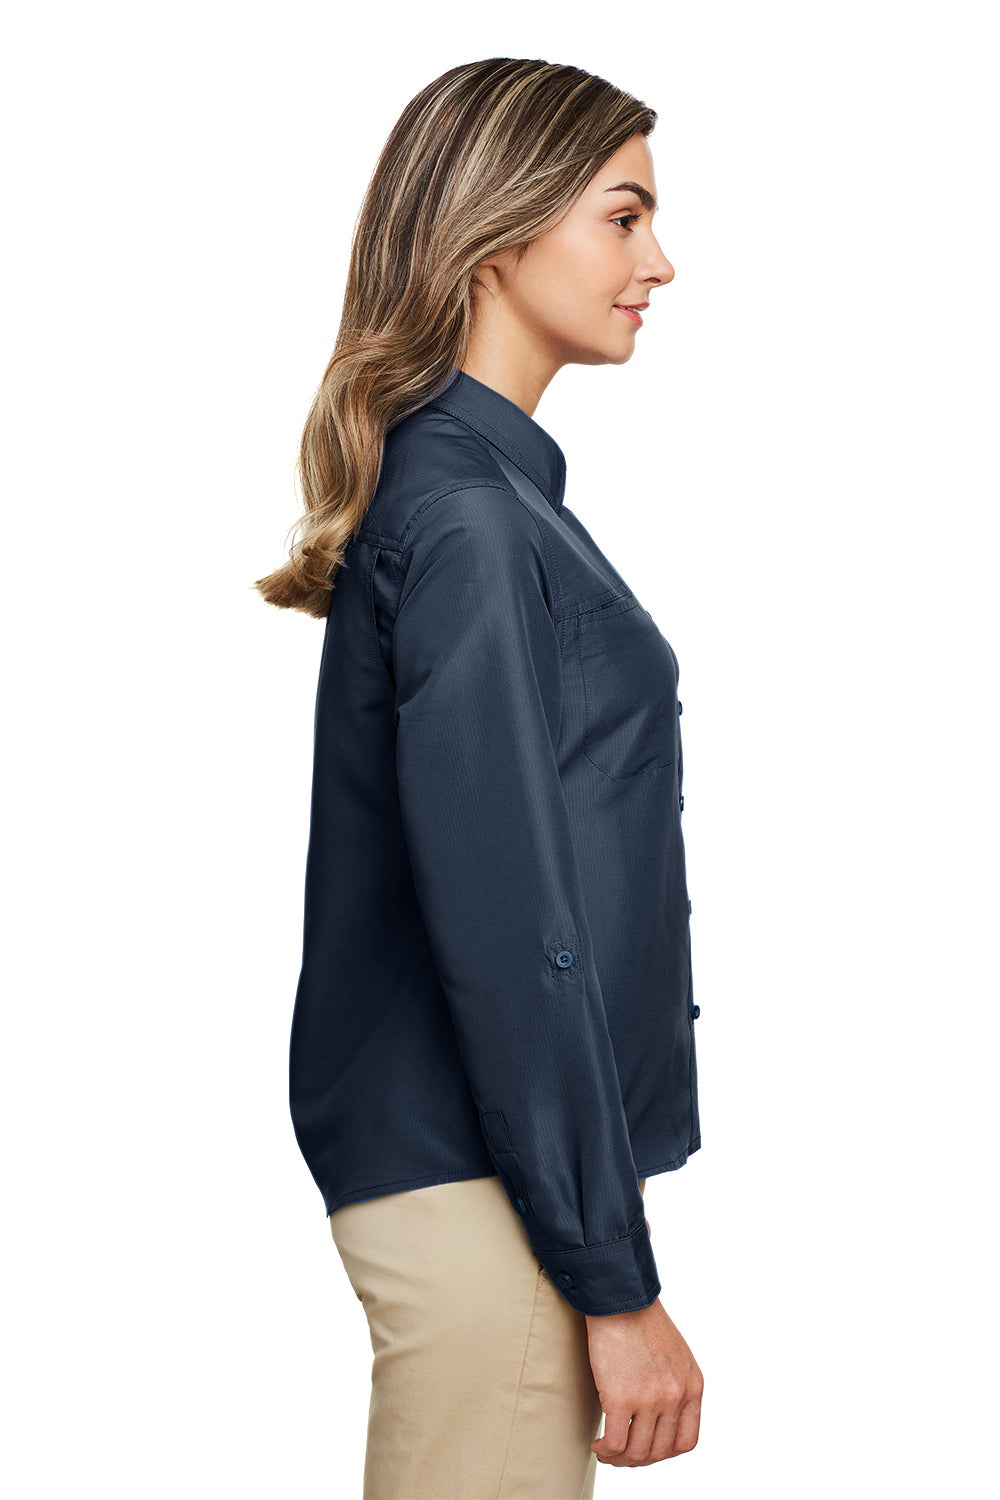 Harriton M580LW Womens Key West Performance Moisture Wicking Long Sleeve Button Down Shirt Navy Blue Side